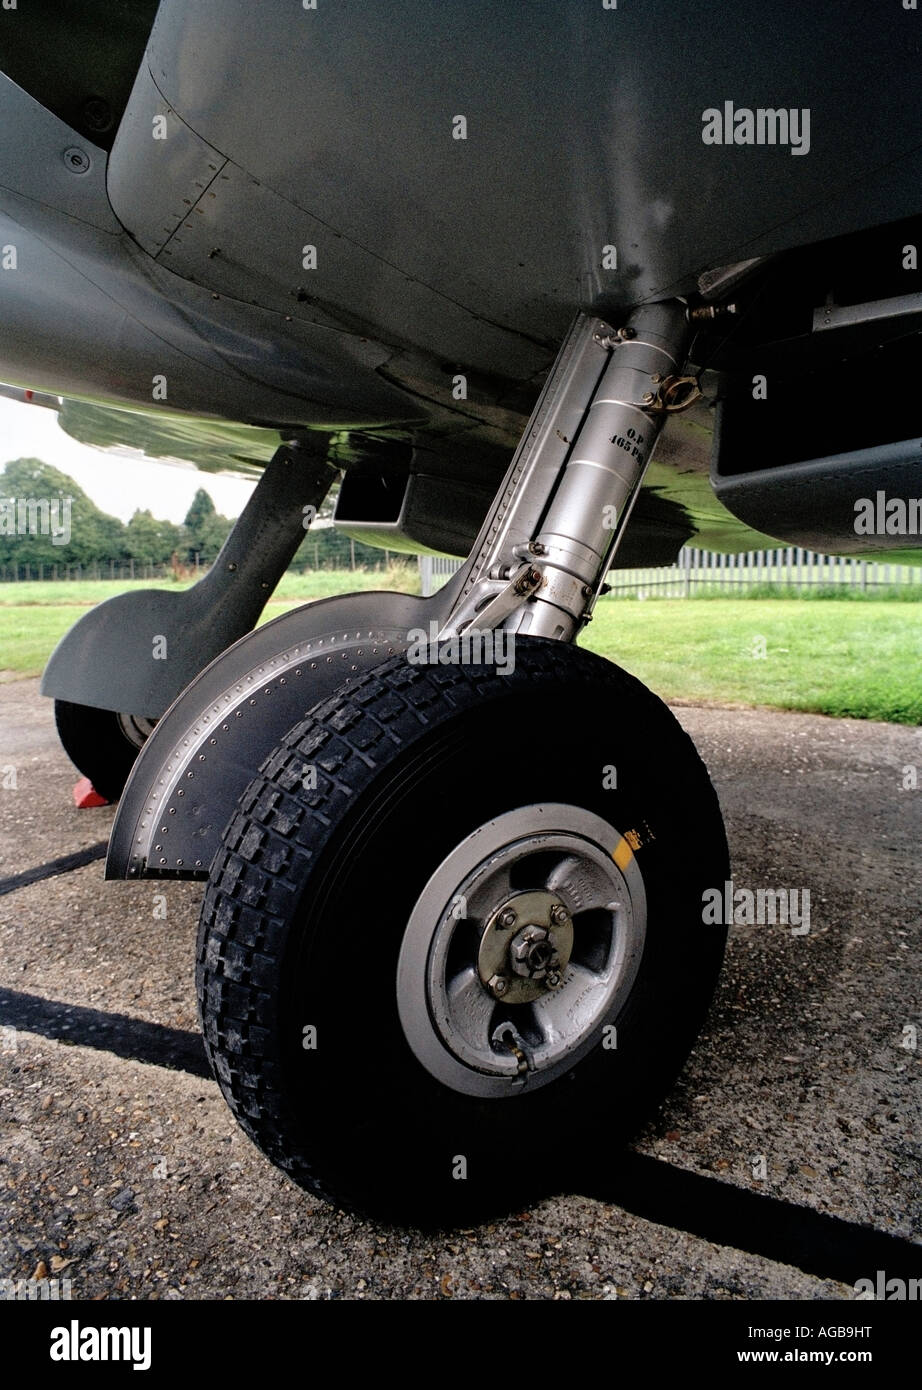 The Undercarriage or landing gear of a Supermarine Spitfire from world war two. - Stock Image